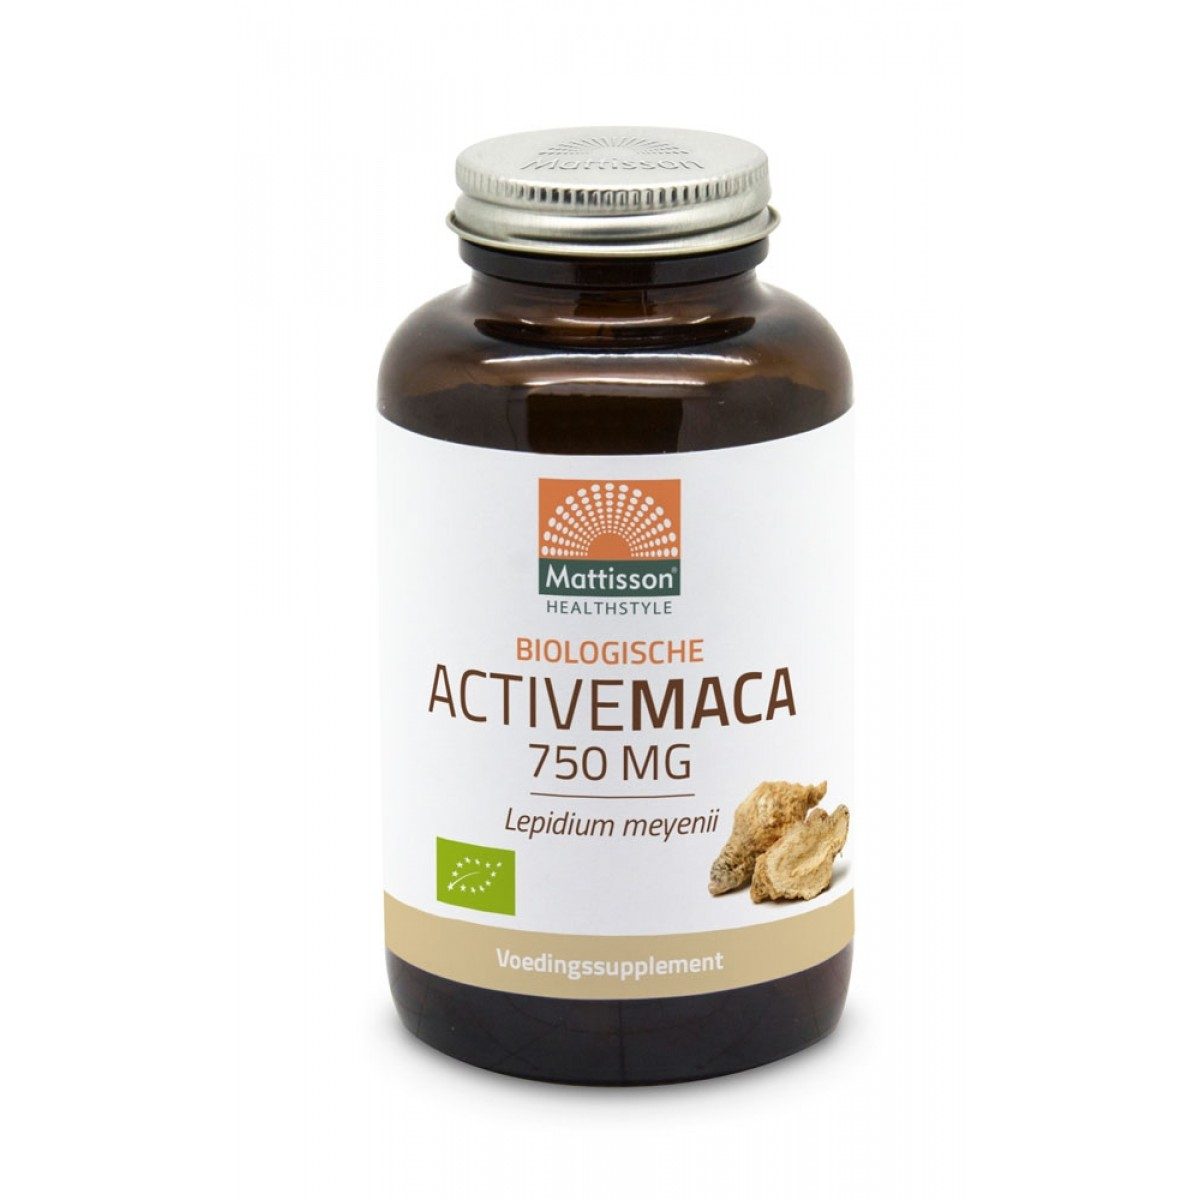 Active Maca 750 mg - The Inca Superfood